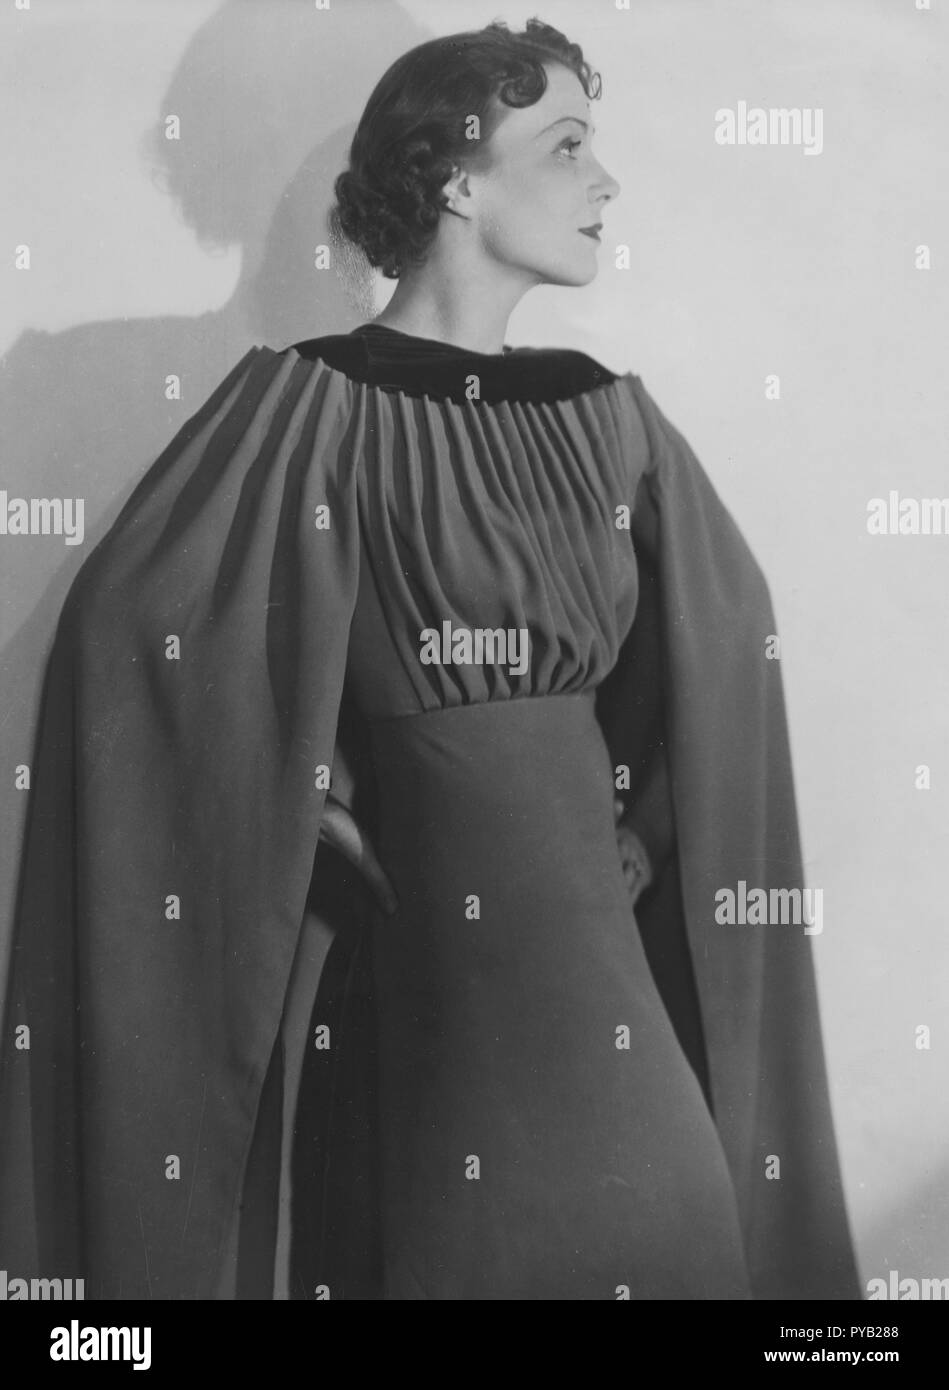 Swedish actress Karin Kavli. 1906-1990. Pictured here 1936 when playing Geneviève in the play Cassini de Paris by Rudolf Lothar directed by Harry Roeck Hansen on Vasateatern in Stockholm 1936 - Stock Image